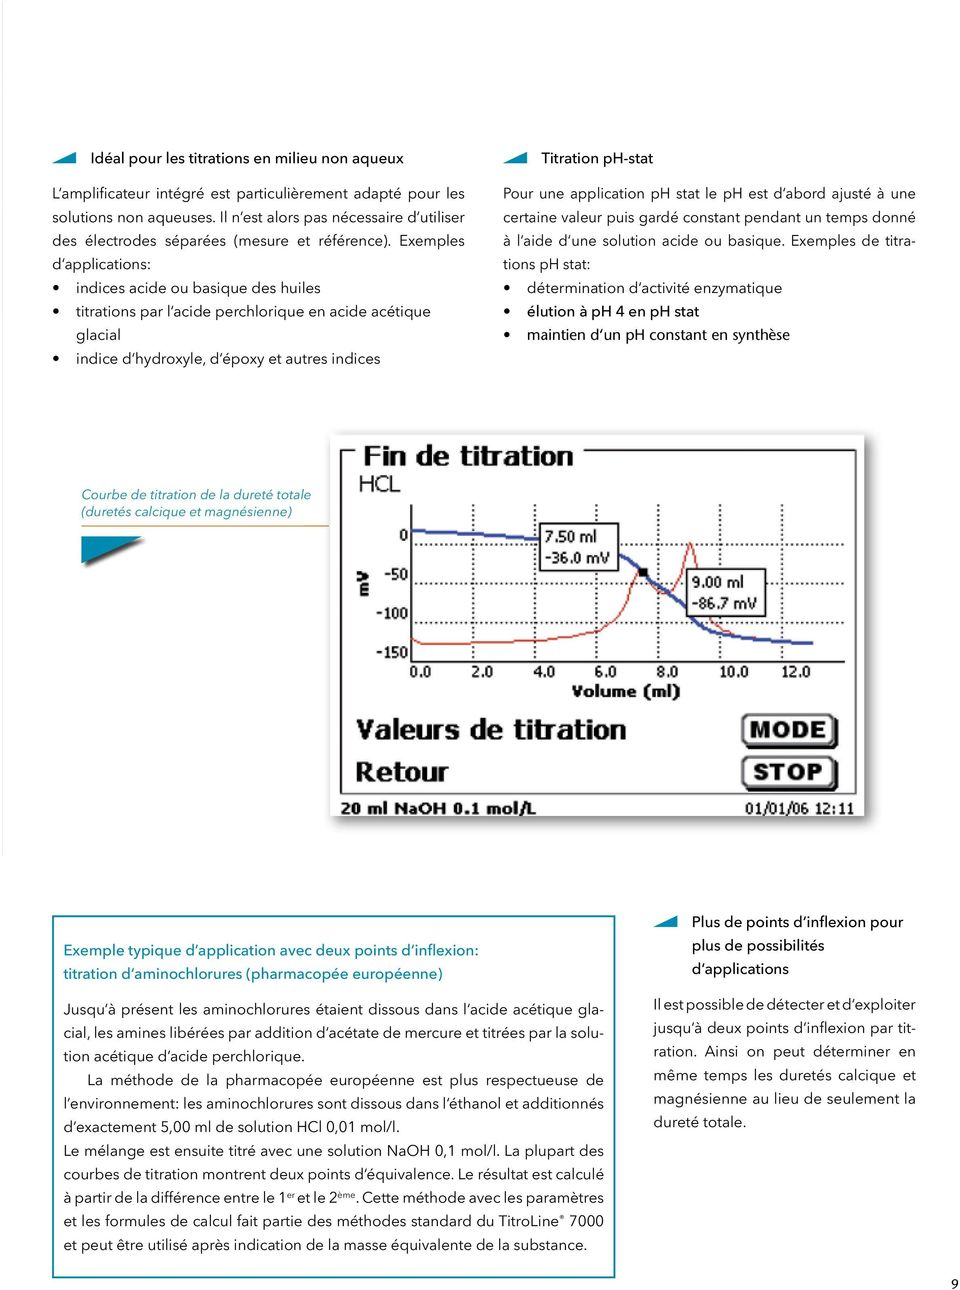 Exemples d applications: indices acide ou basique des huiles titrations par l acide perchlorique en acide acétique glacial indice d hydroxyle, d époxy et autres indices Titration ph-stat Pour une